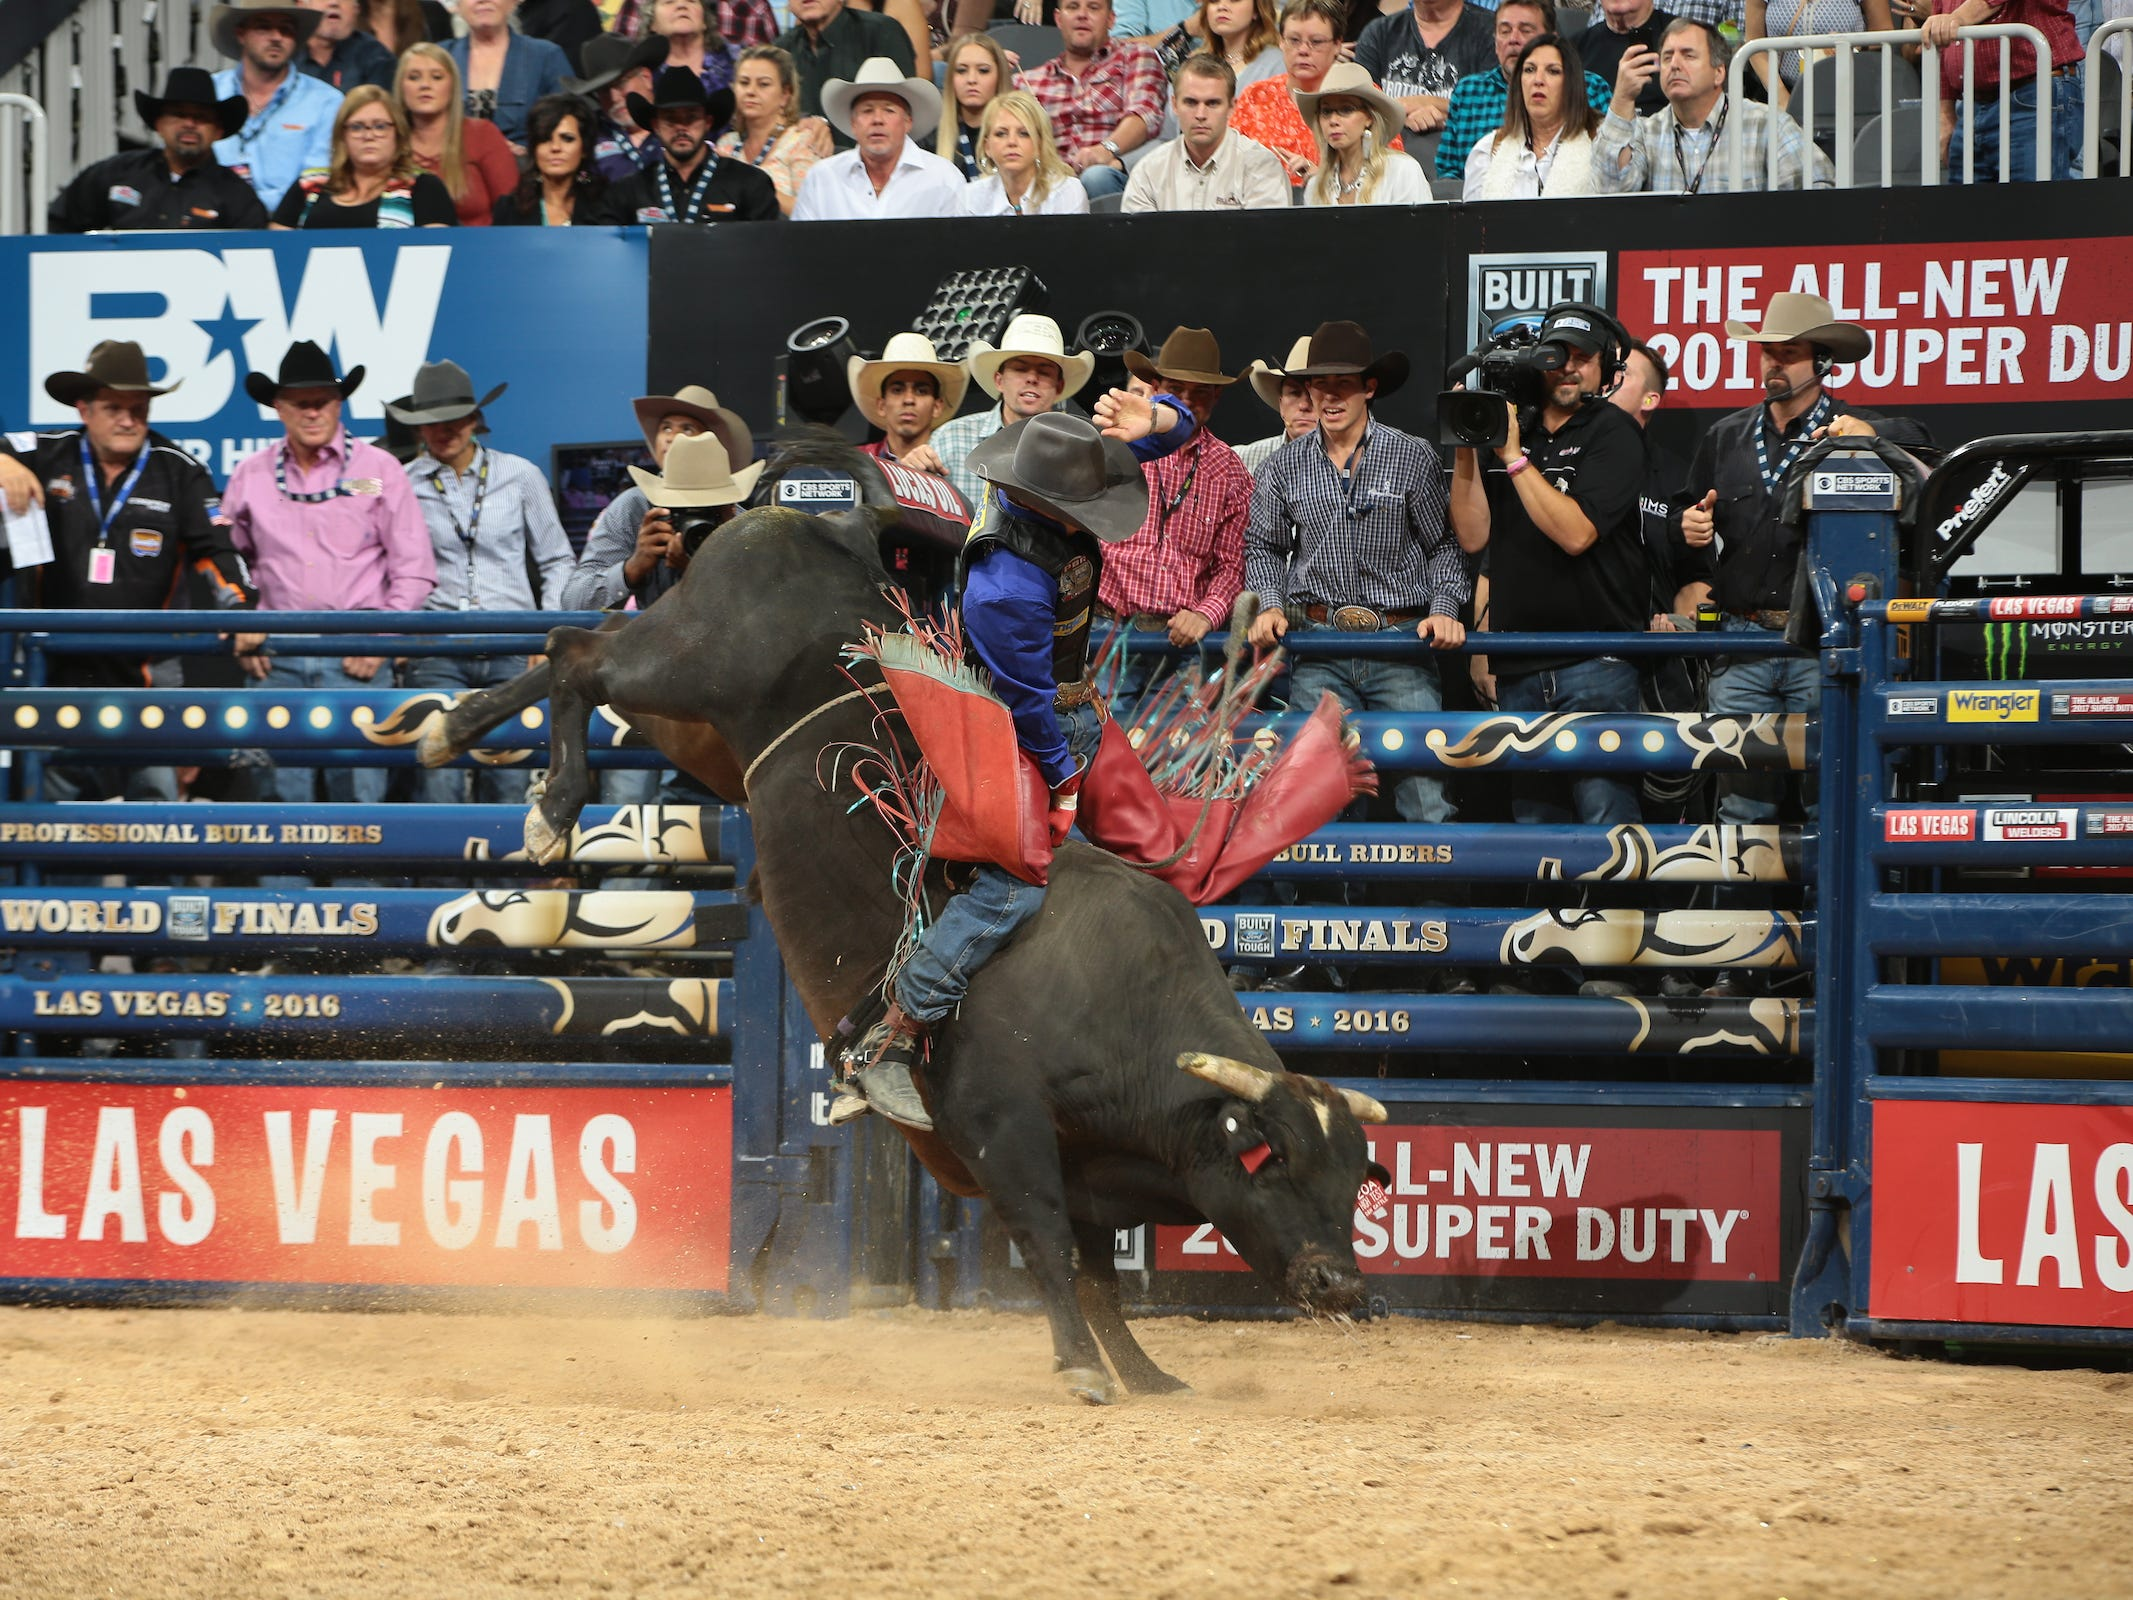 Mason Lowe attempts to ride D&H Cattle Company's High Test during the fourth round of the Built Ford Tough series PBR World Finals.